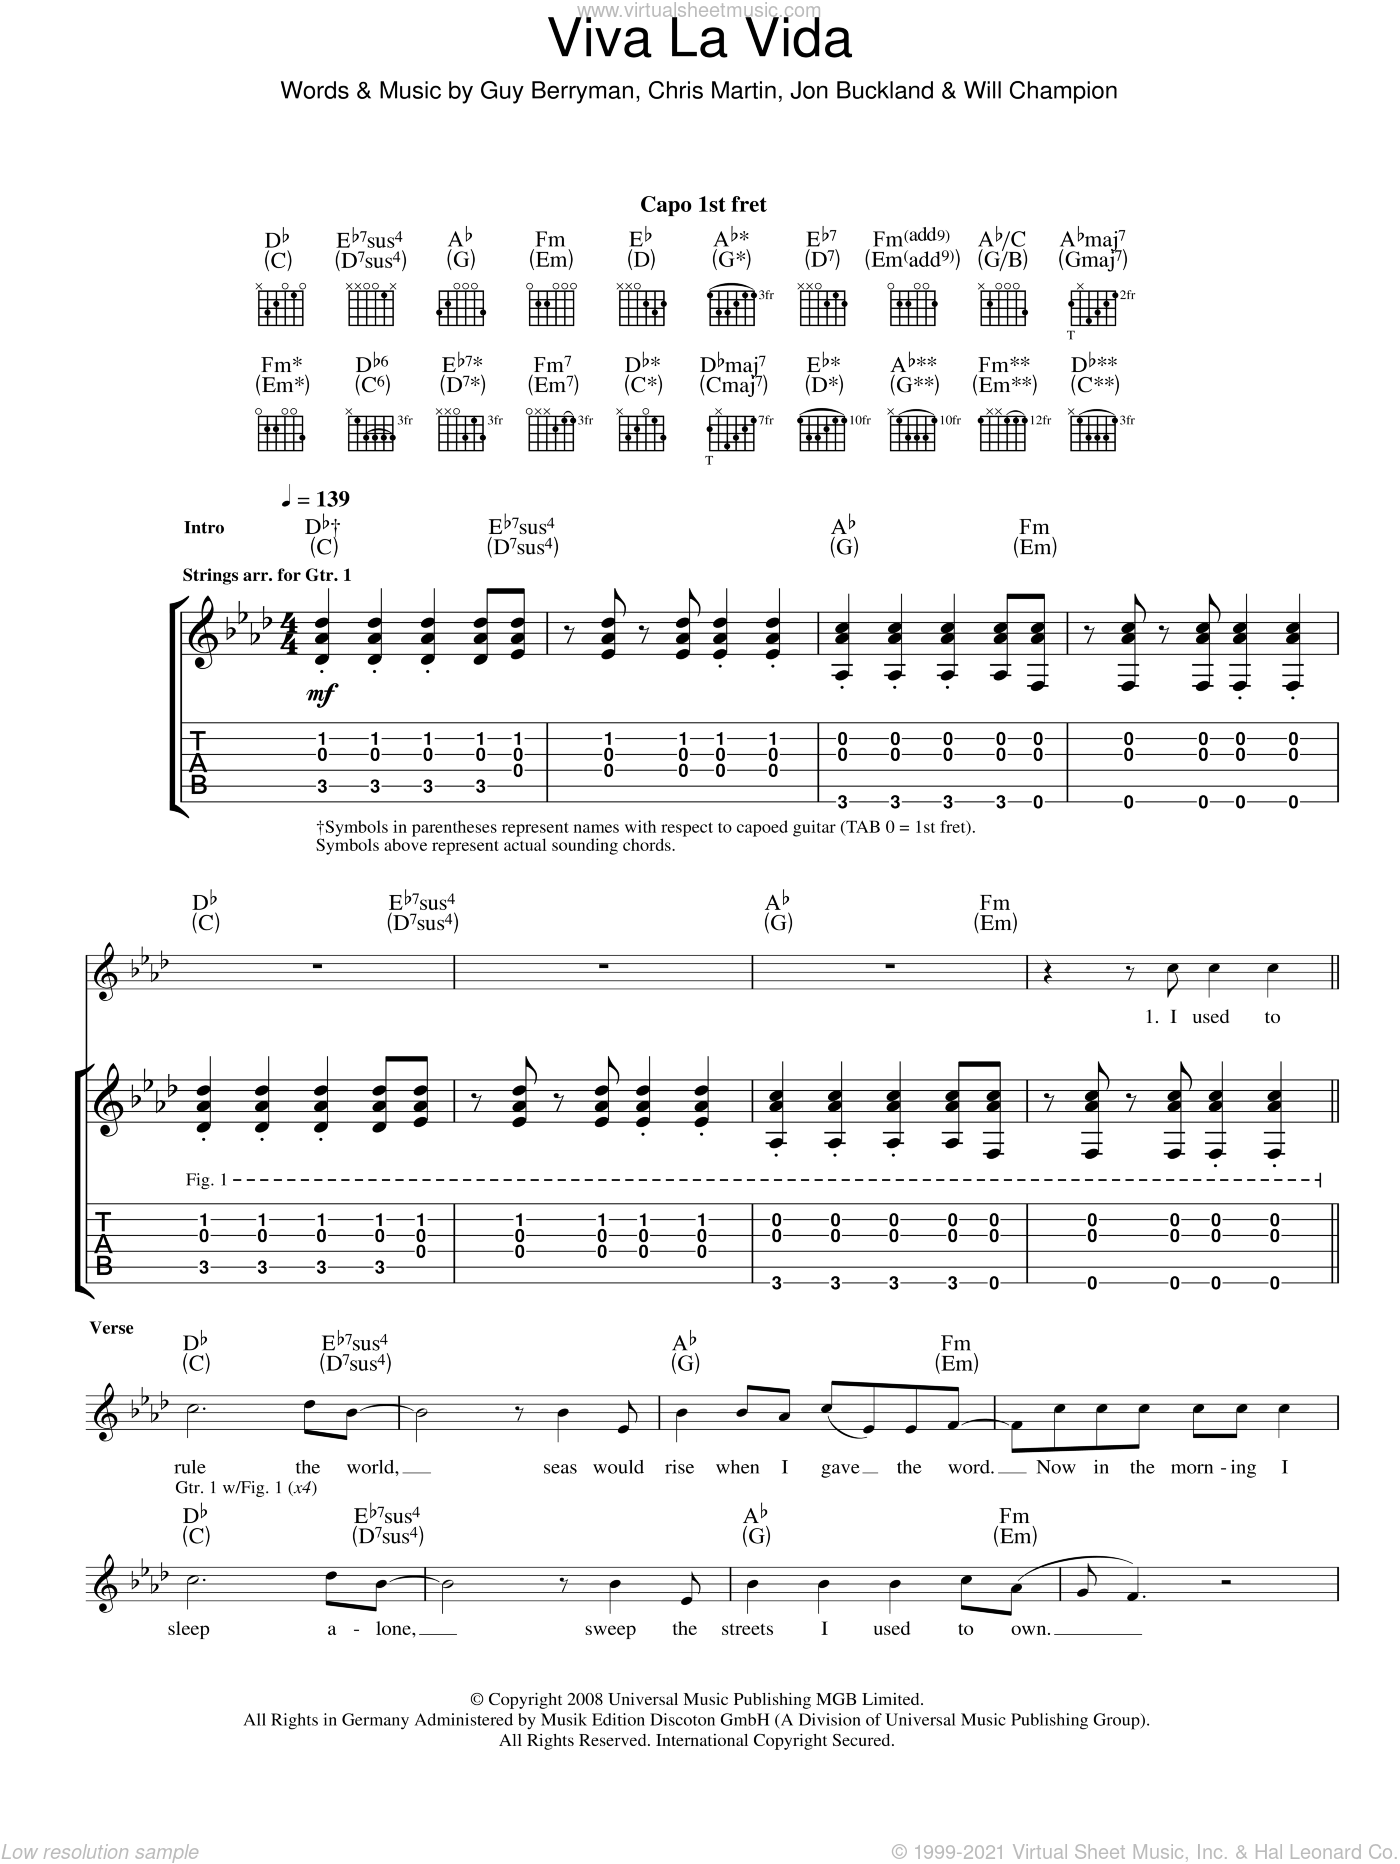 Viva La Vida sheet music for guitar (tablature) by Chris Martin, Coldplay, Guy Berryman, Jon Buckland and Will Champion. Score Image Preview.